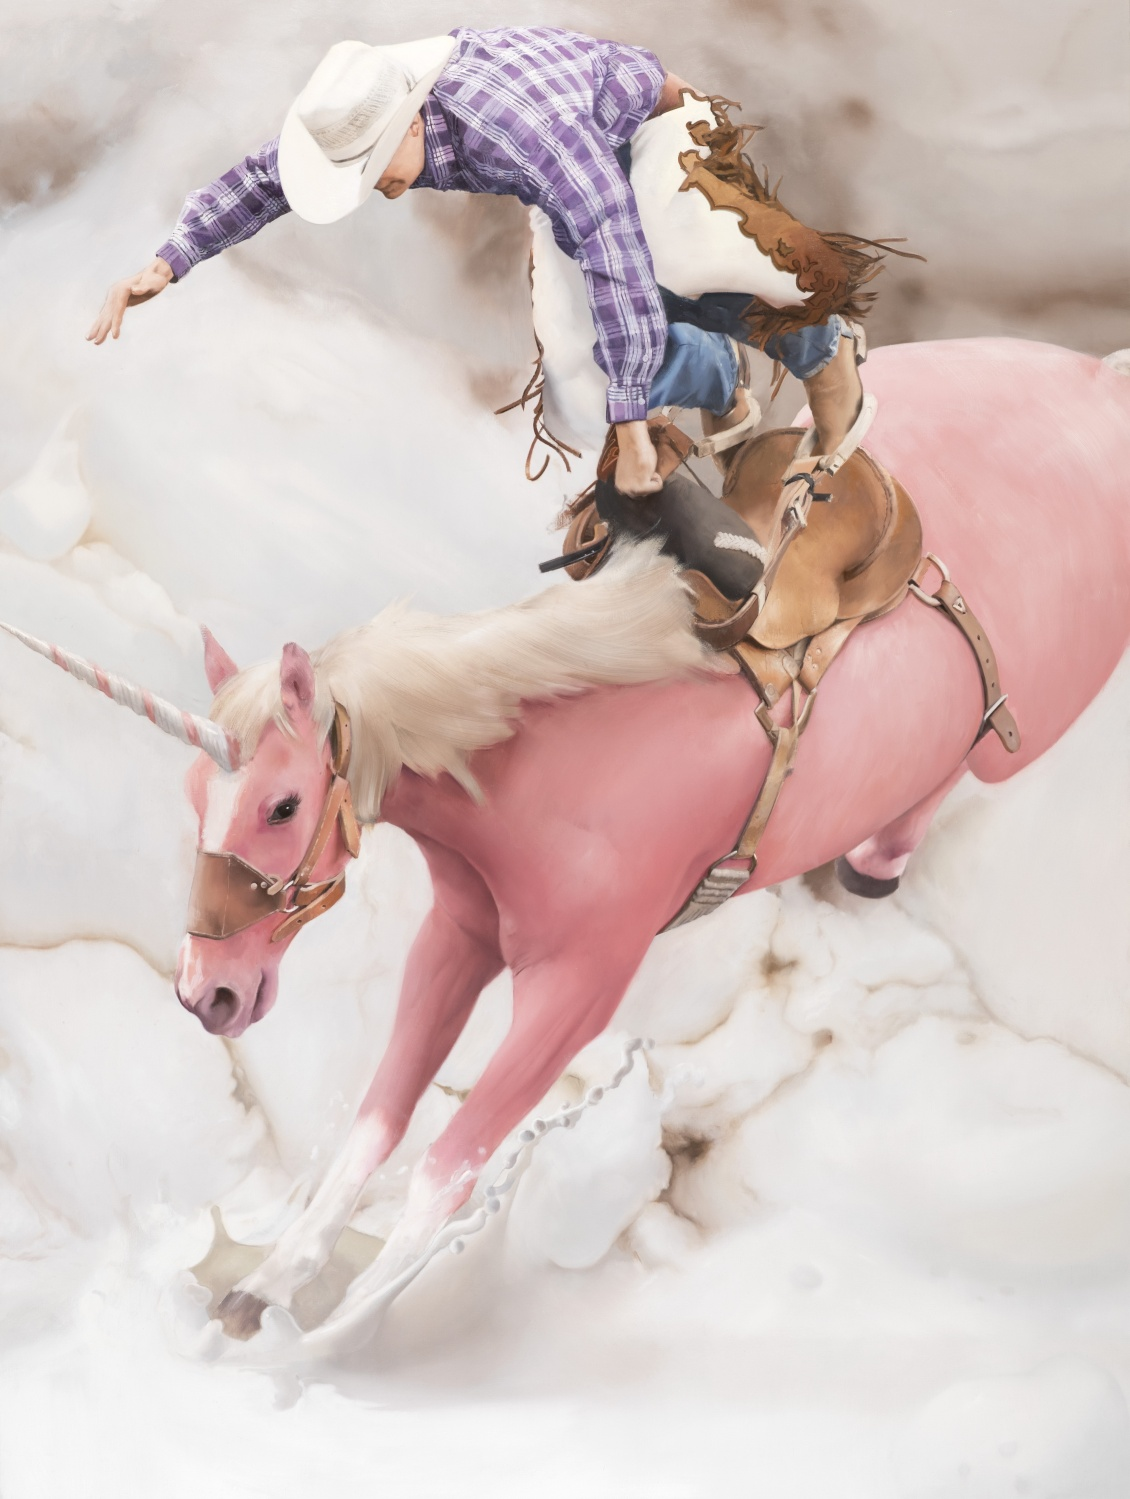 The Taming of theCowboy